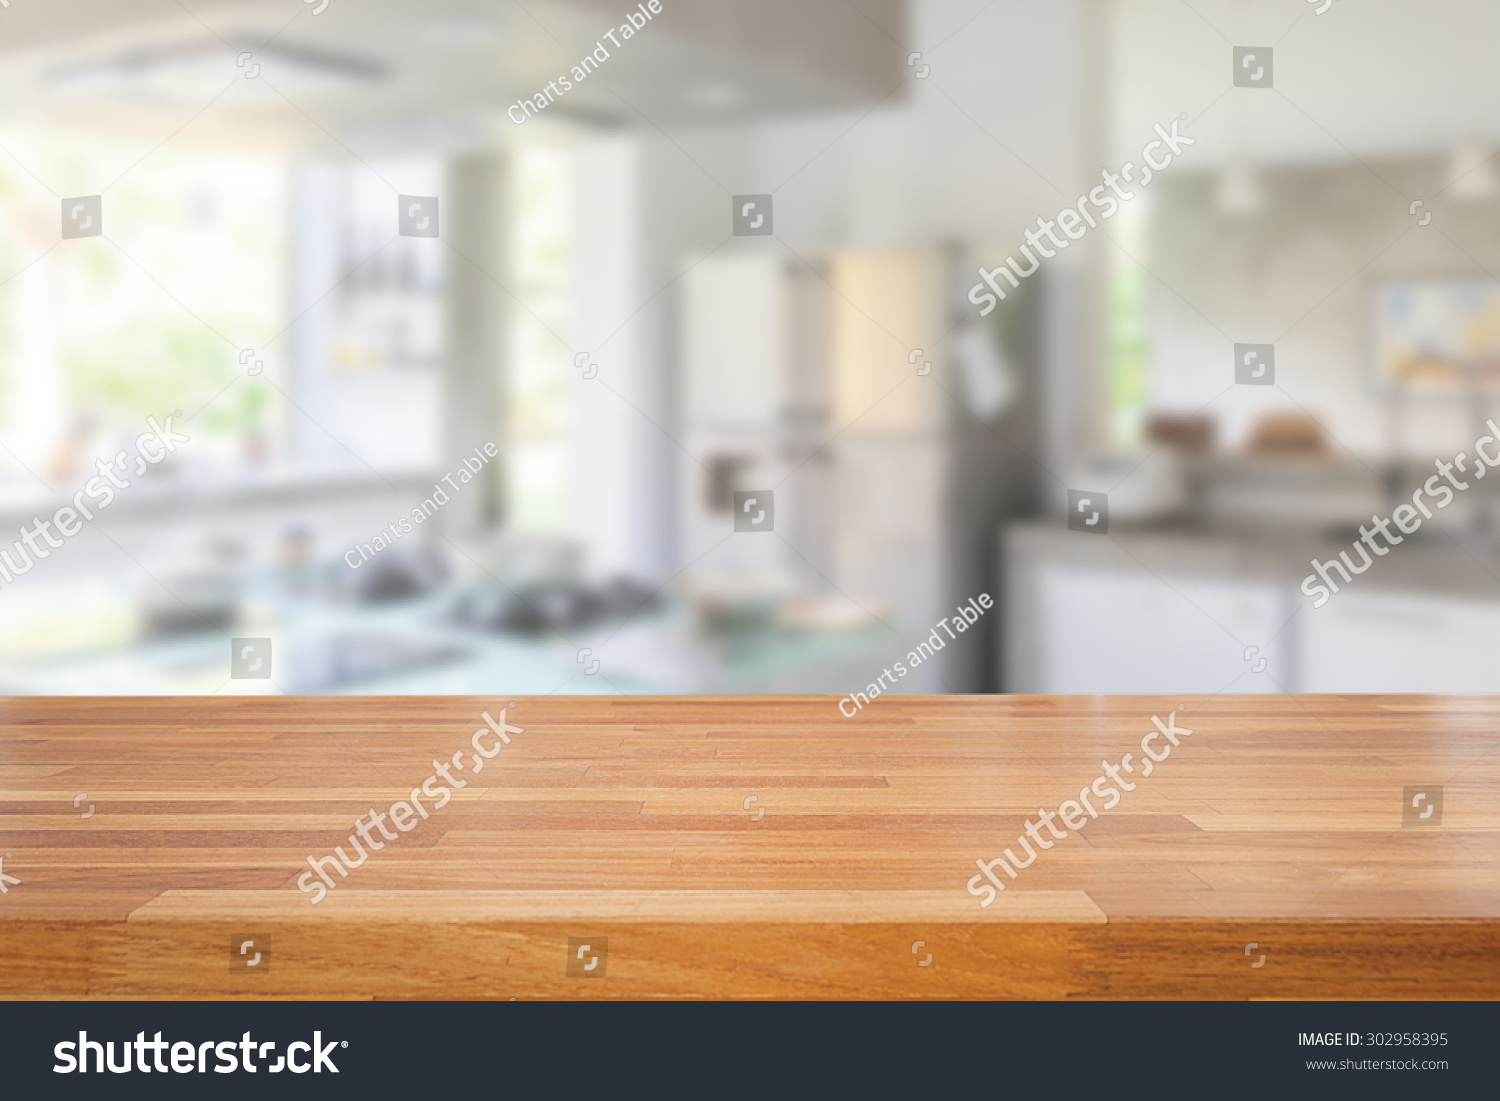 Wooden Table And Blurred Kitchen Background Product Montage Display